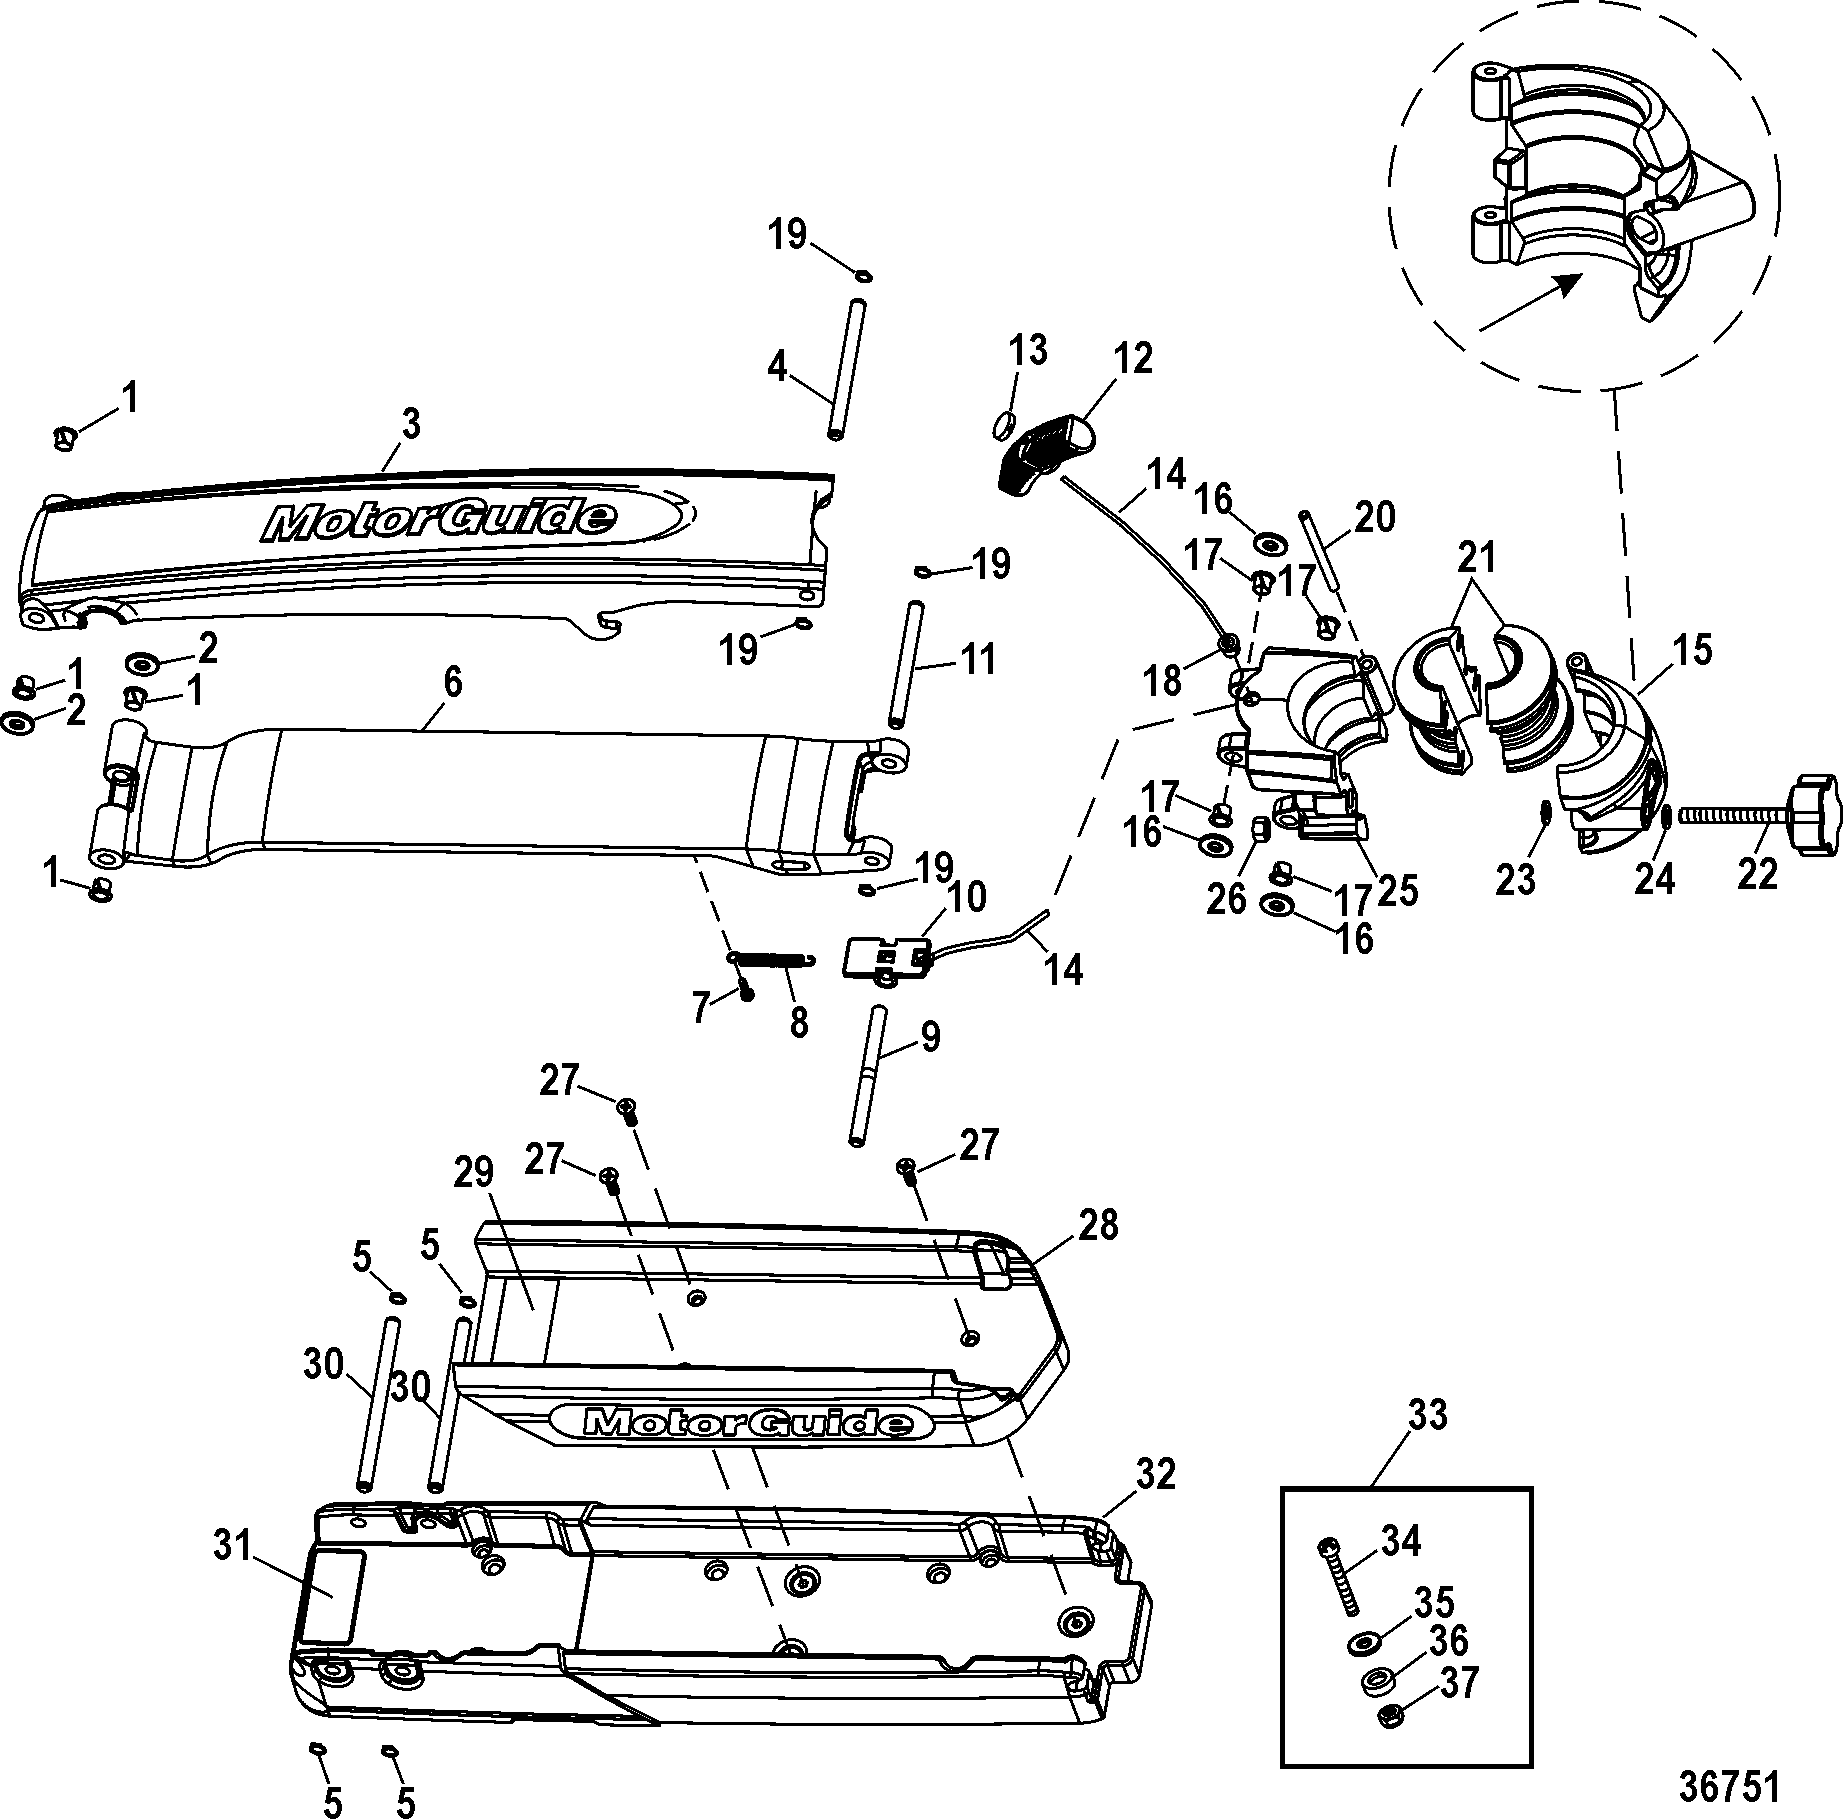 Motorguide W75 Parts Diagram